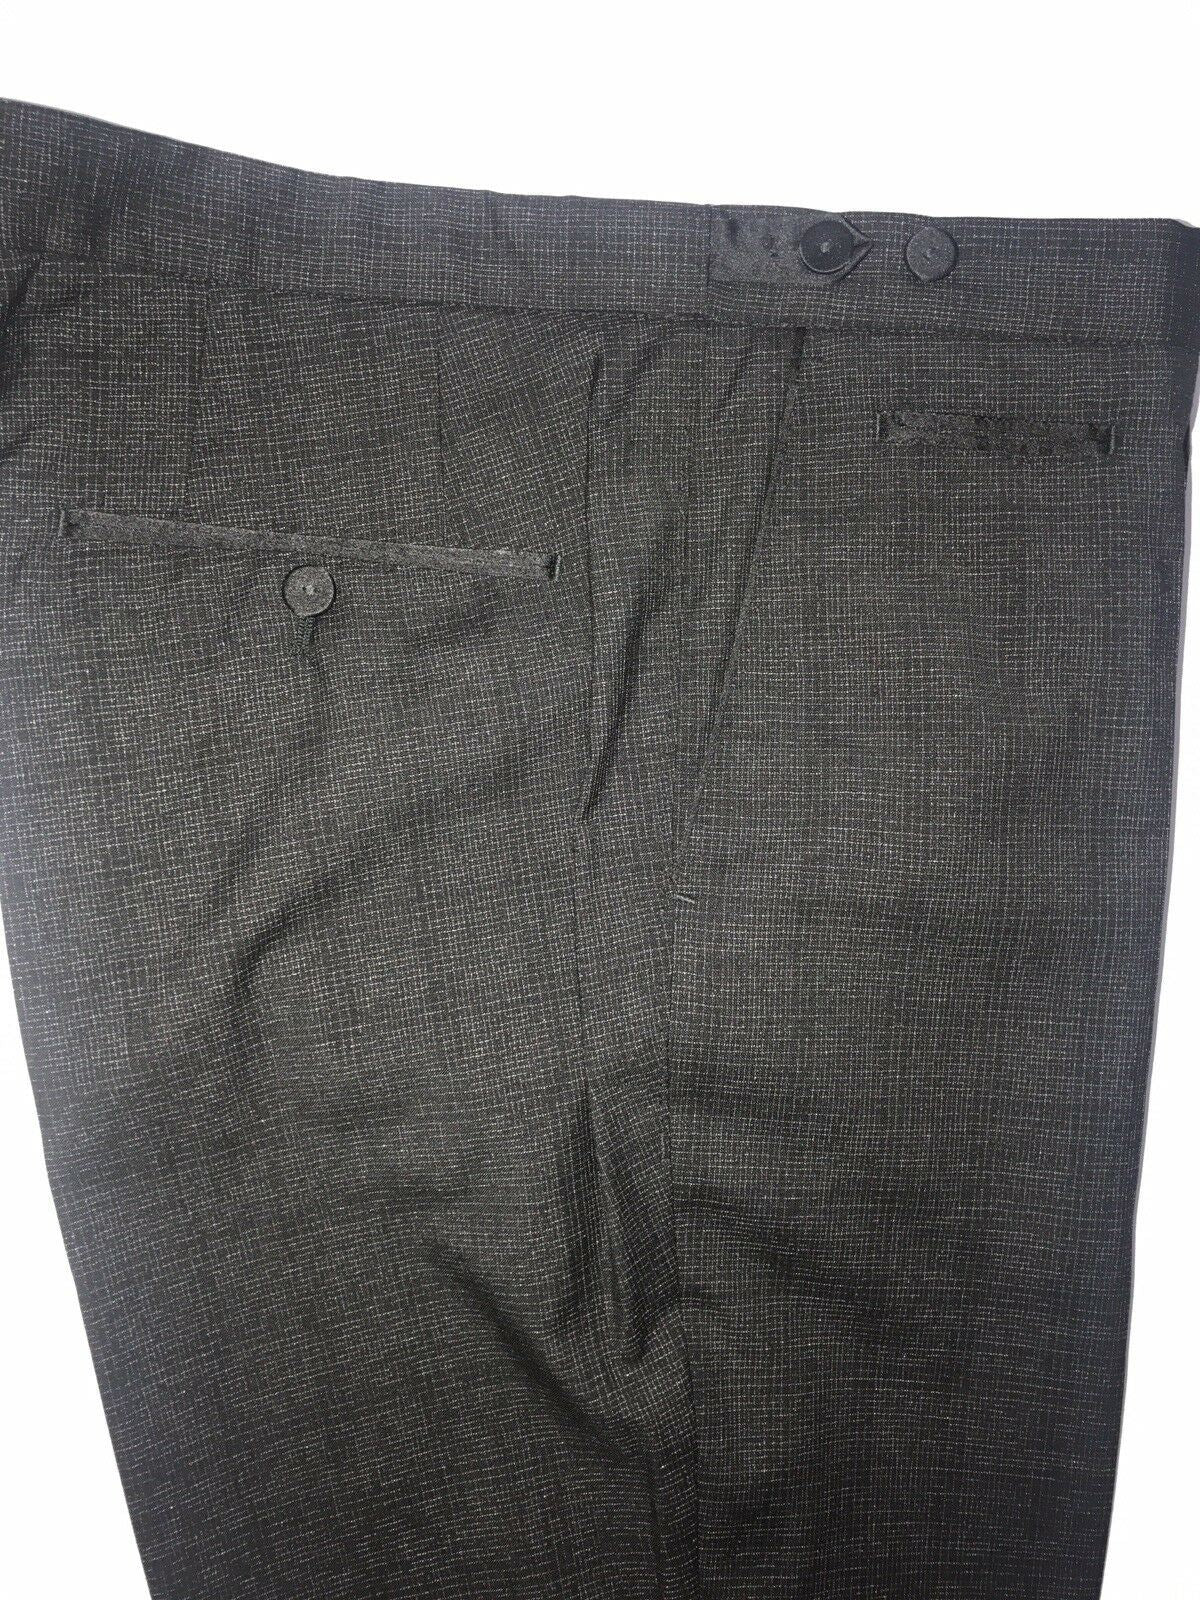 New $285 Boss Hugo Boss Glister Mens Wool Black Dress Pants Size 36R US